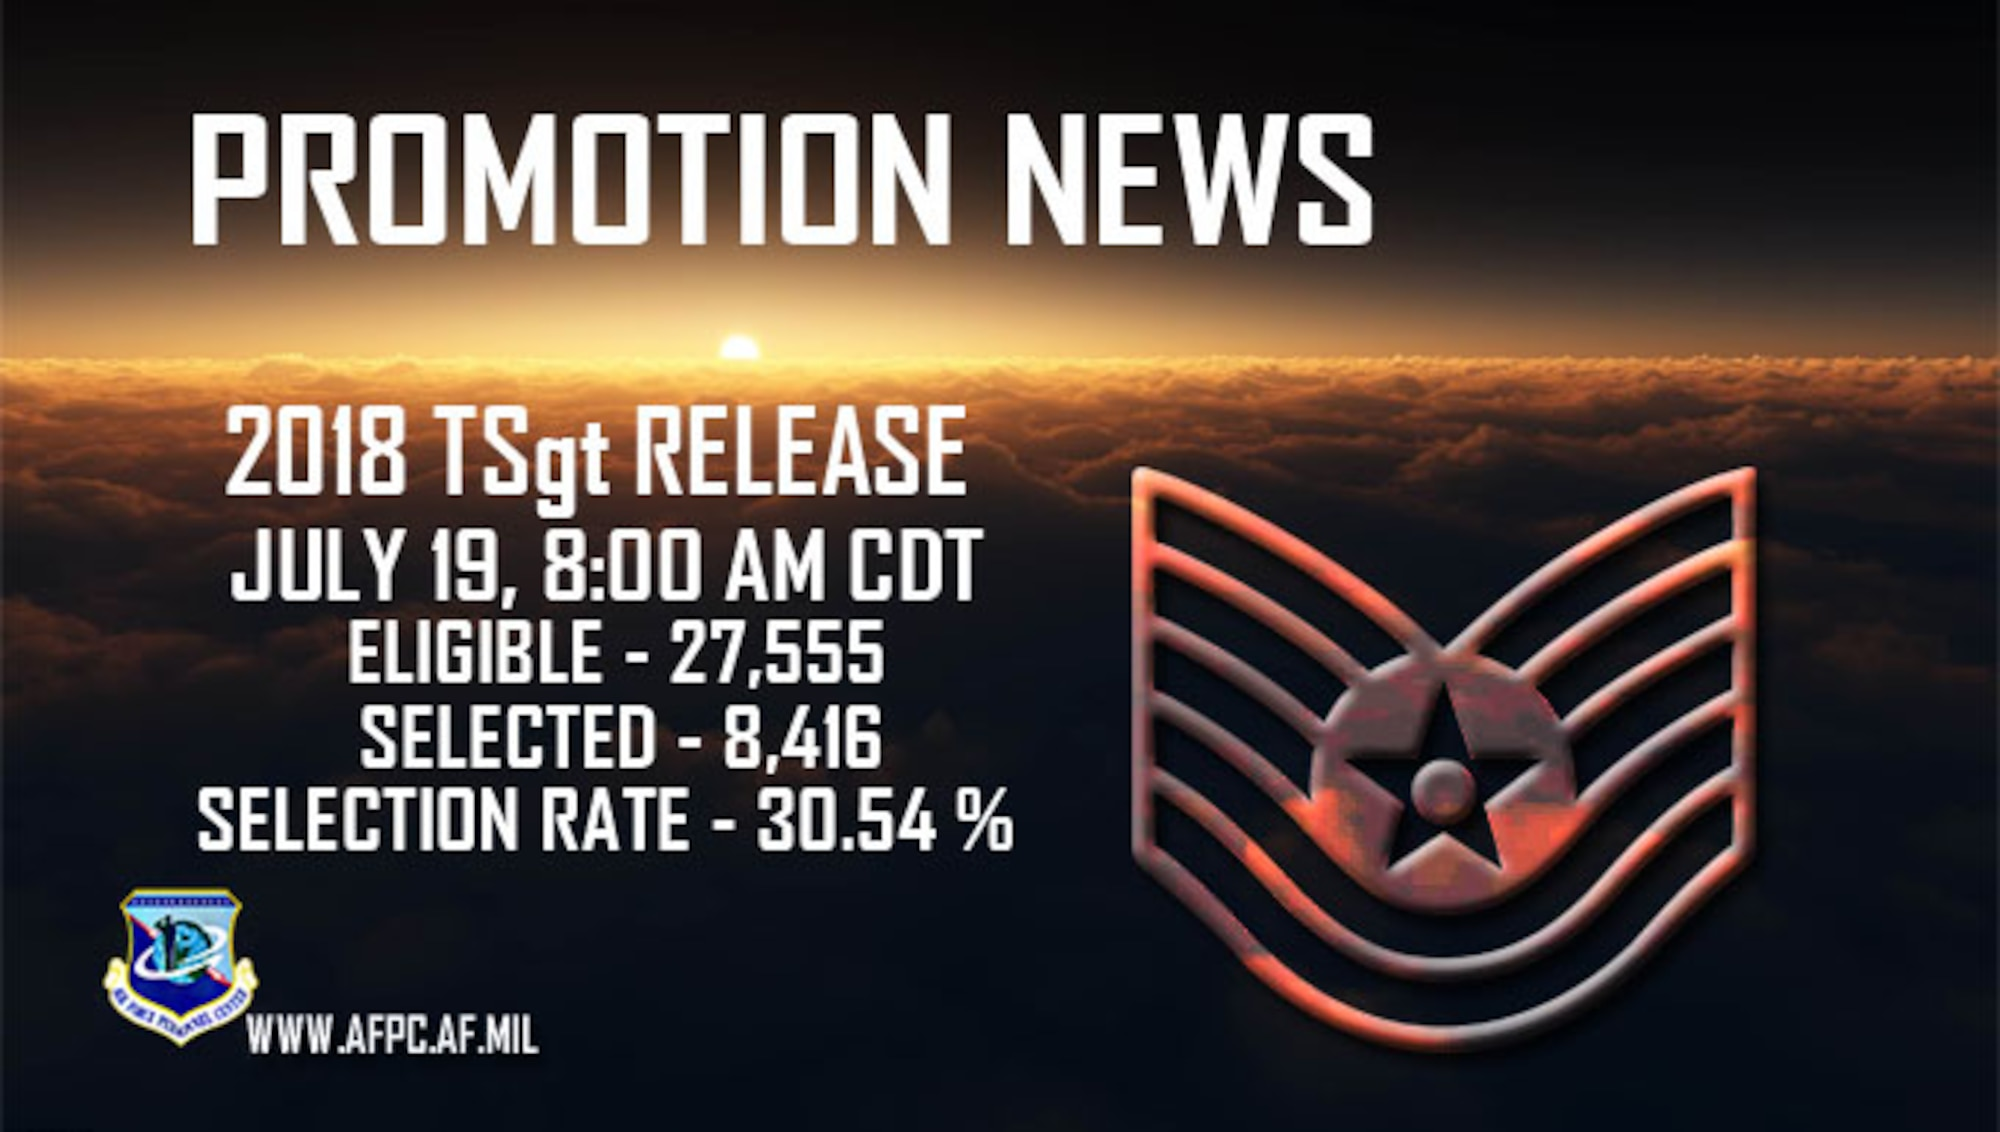 Promotion News:  2018 TSgt release, July 19, 8:00 am CDT. Eligible:  27,555 Selected:  8,416 Selection Rate:  30.54%